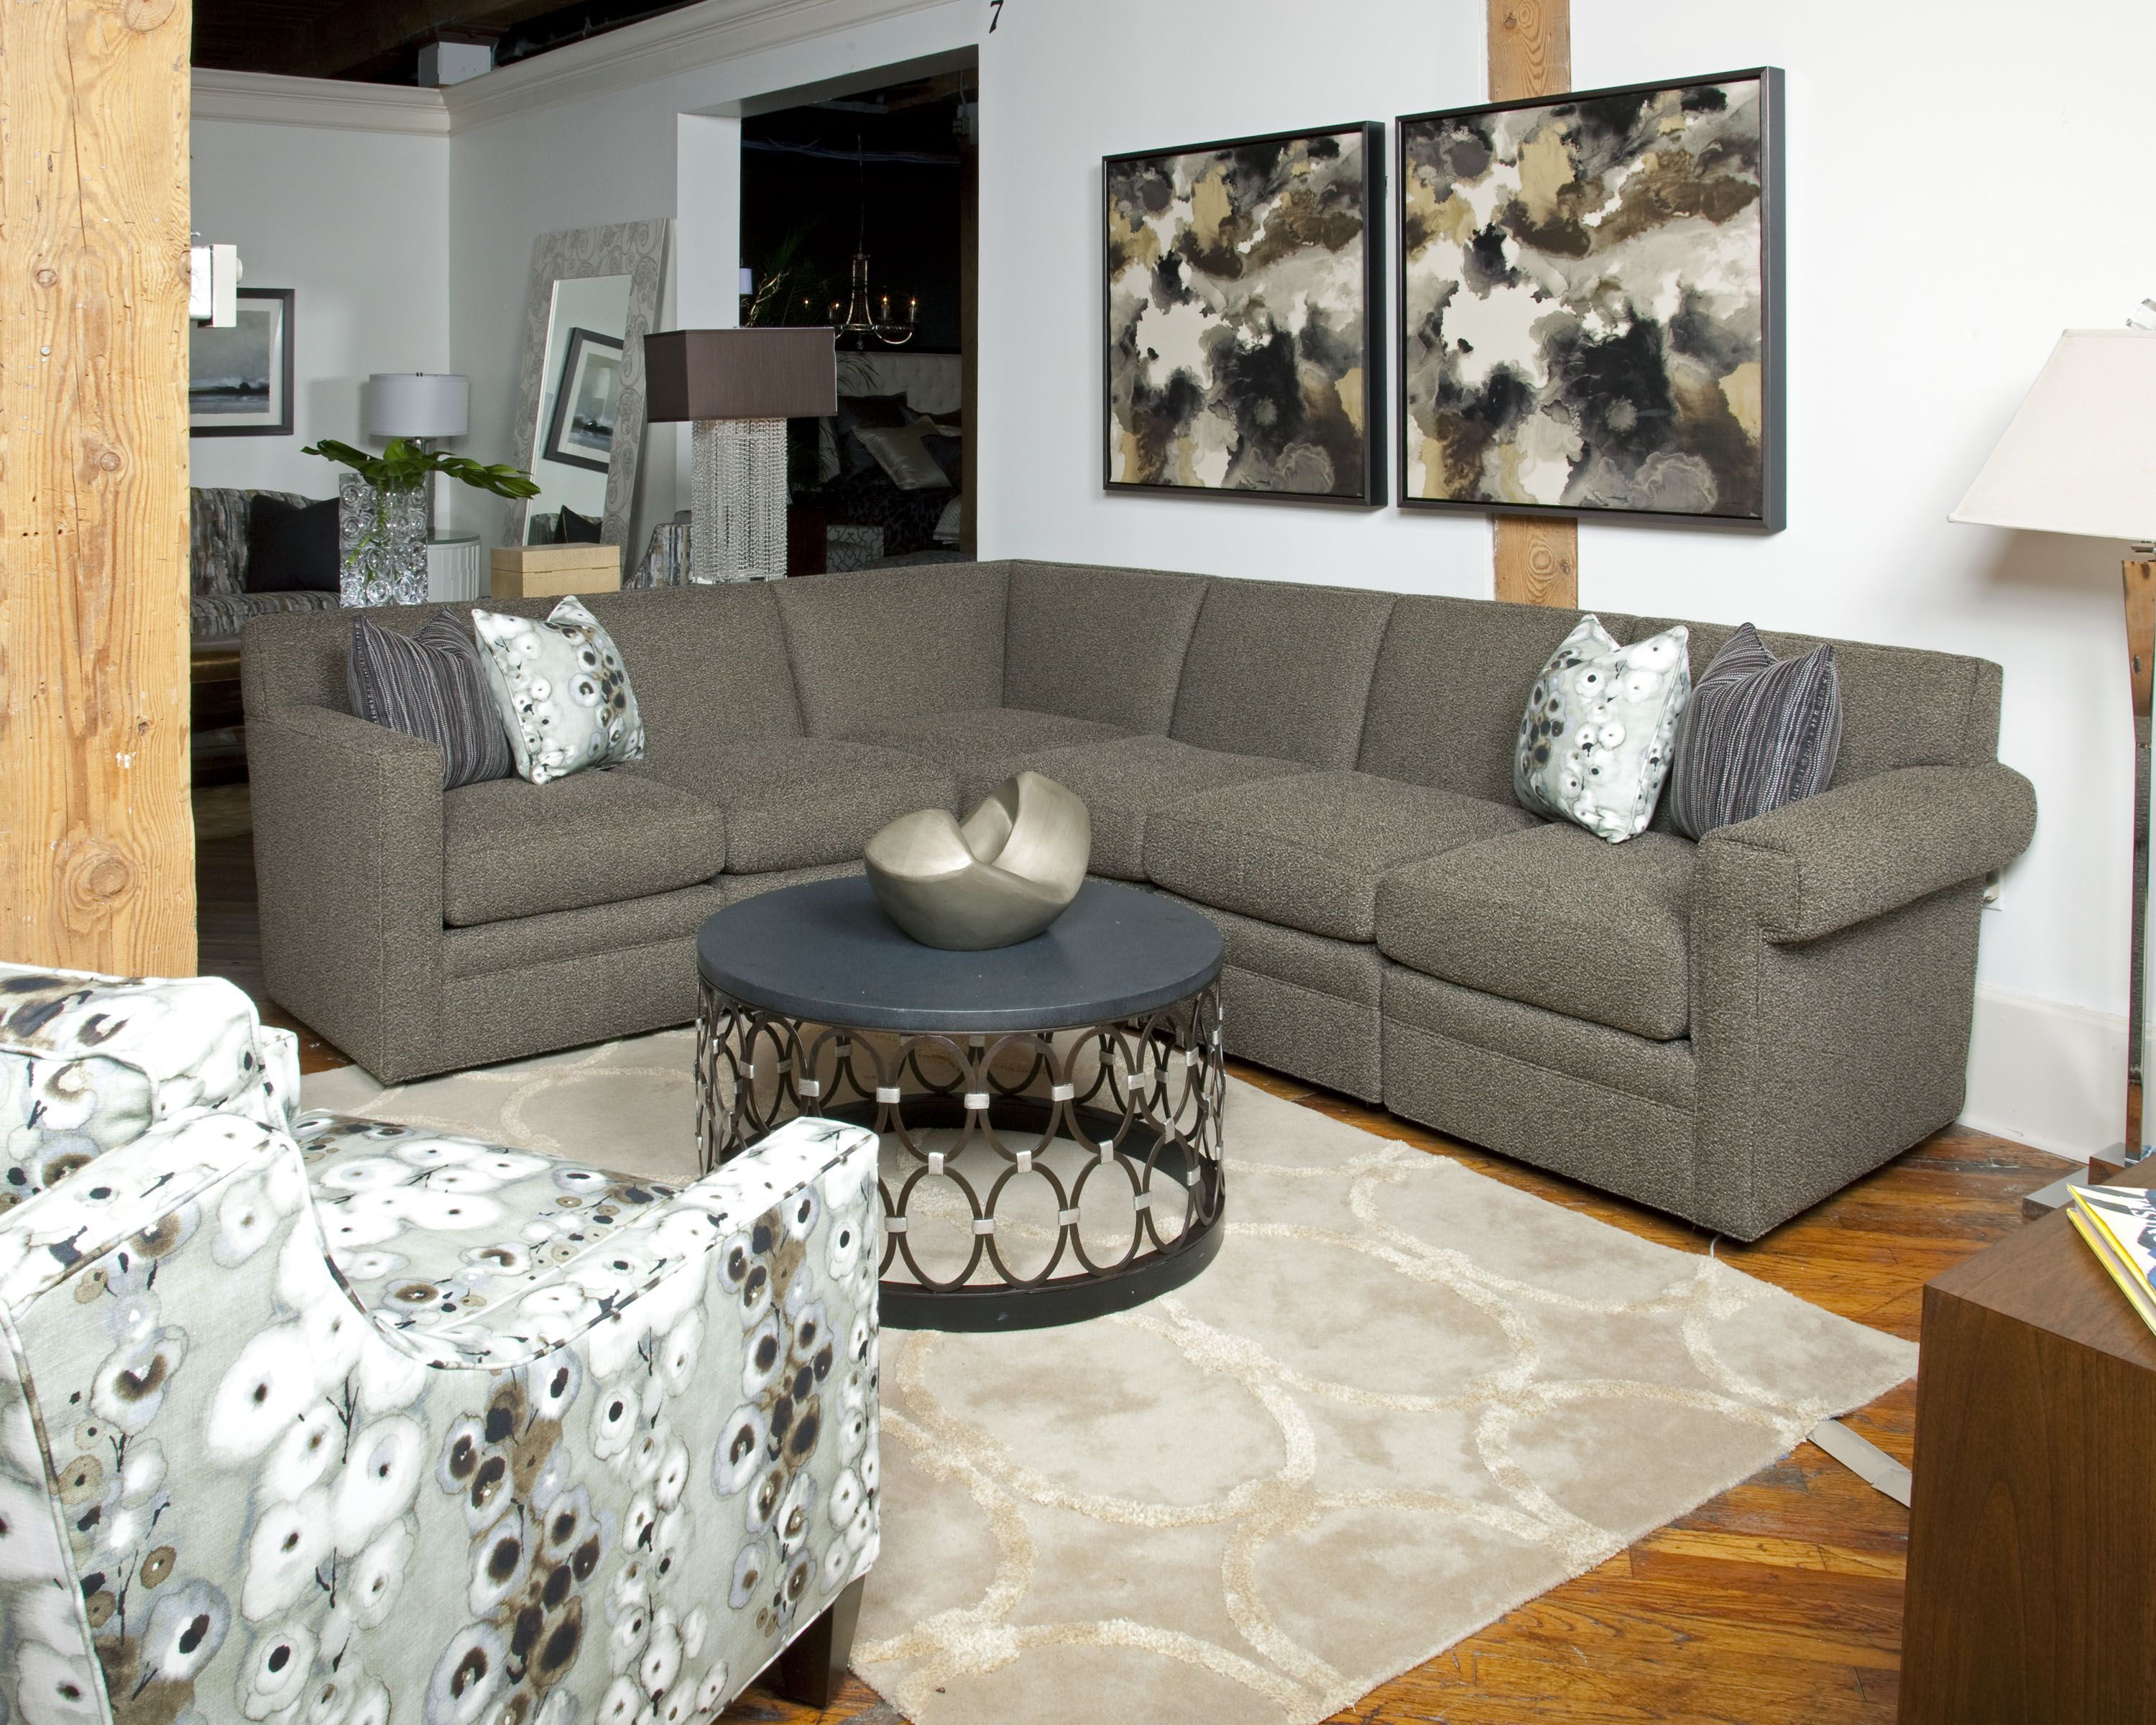 Highland House Furniture Collection By Candice Olson For The